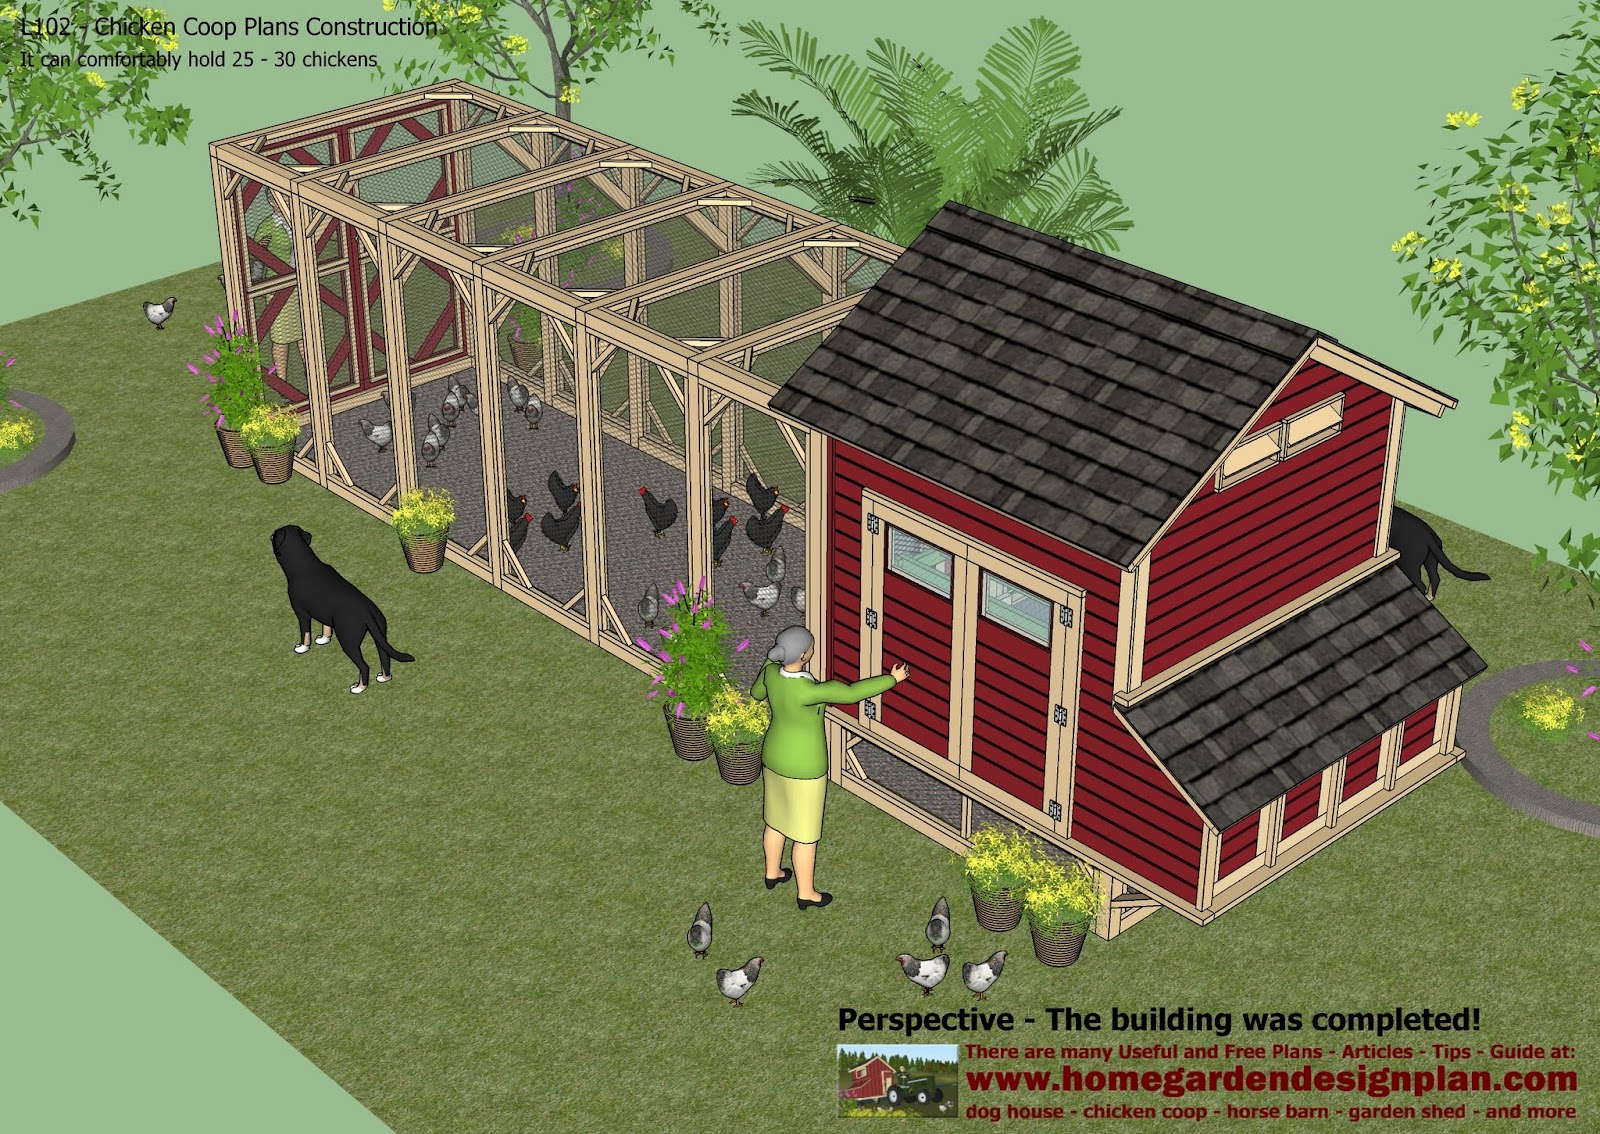 Sntila l102 chicken coop plans construction chicken coop for How to build a chicken hutch